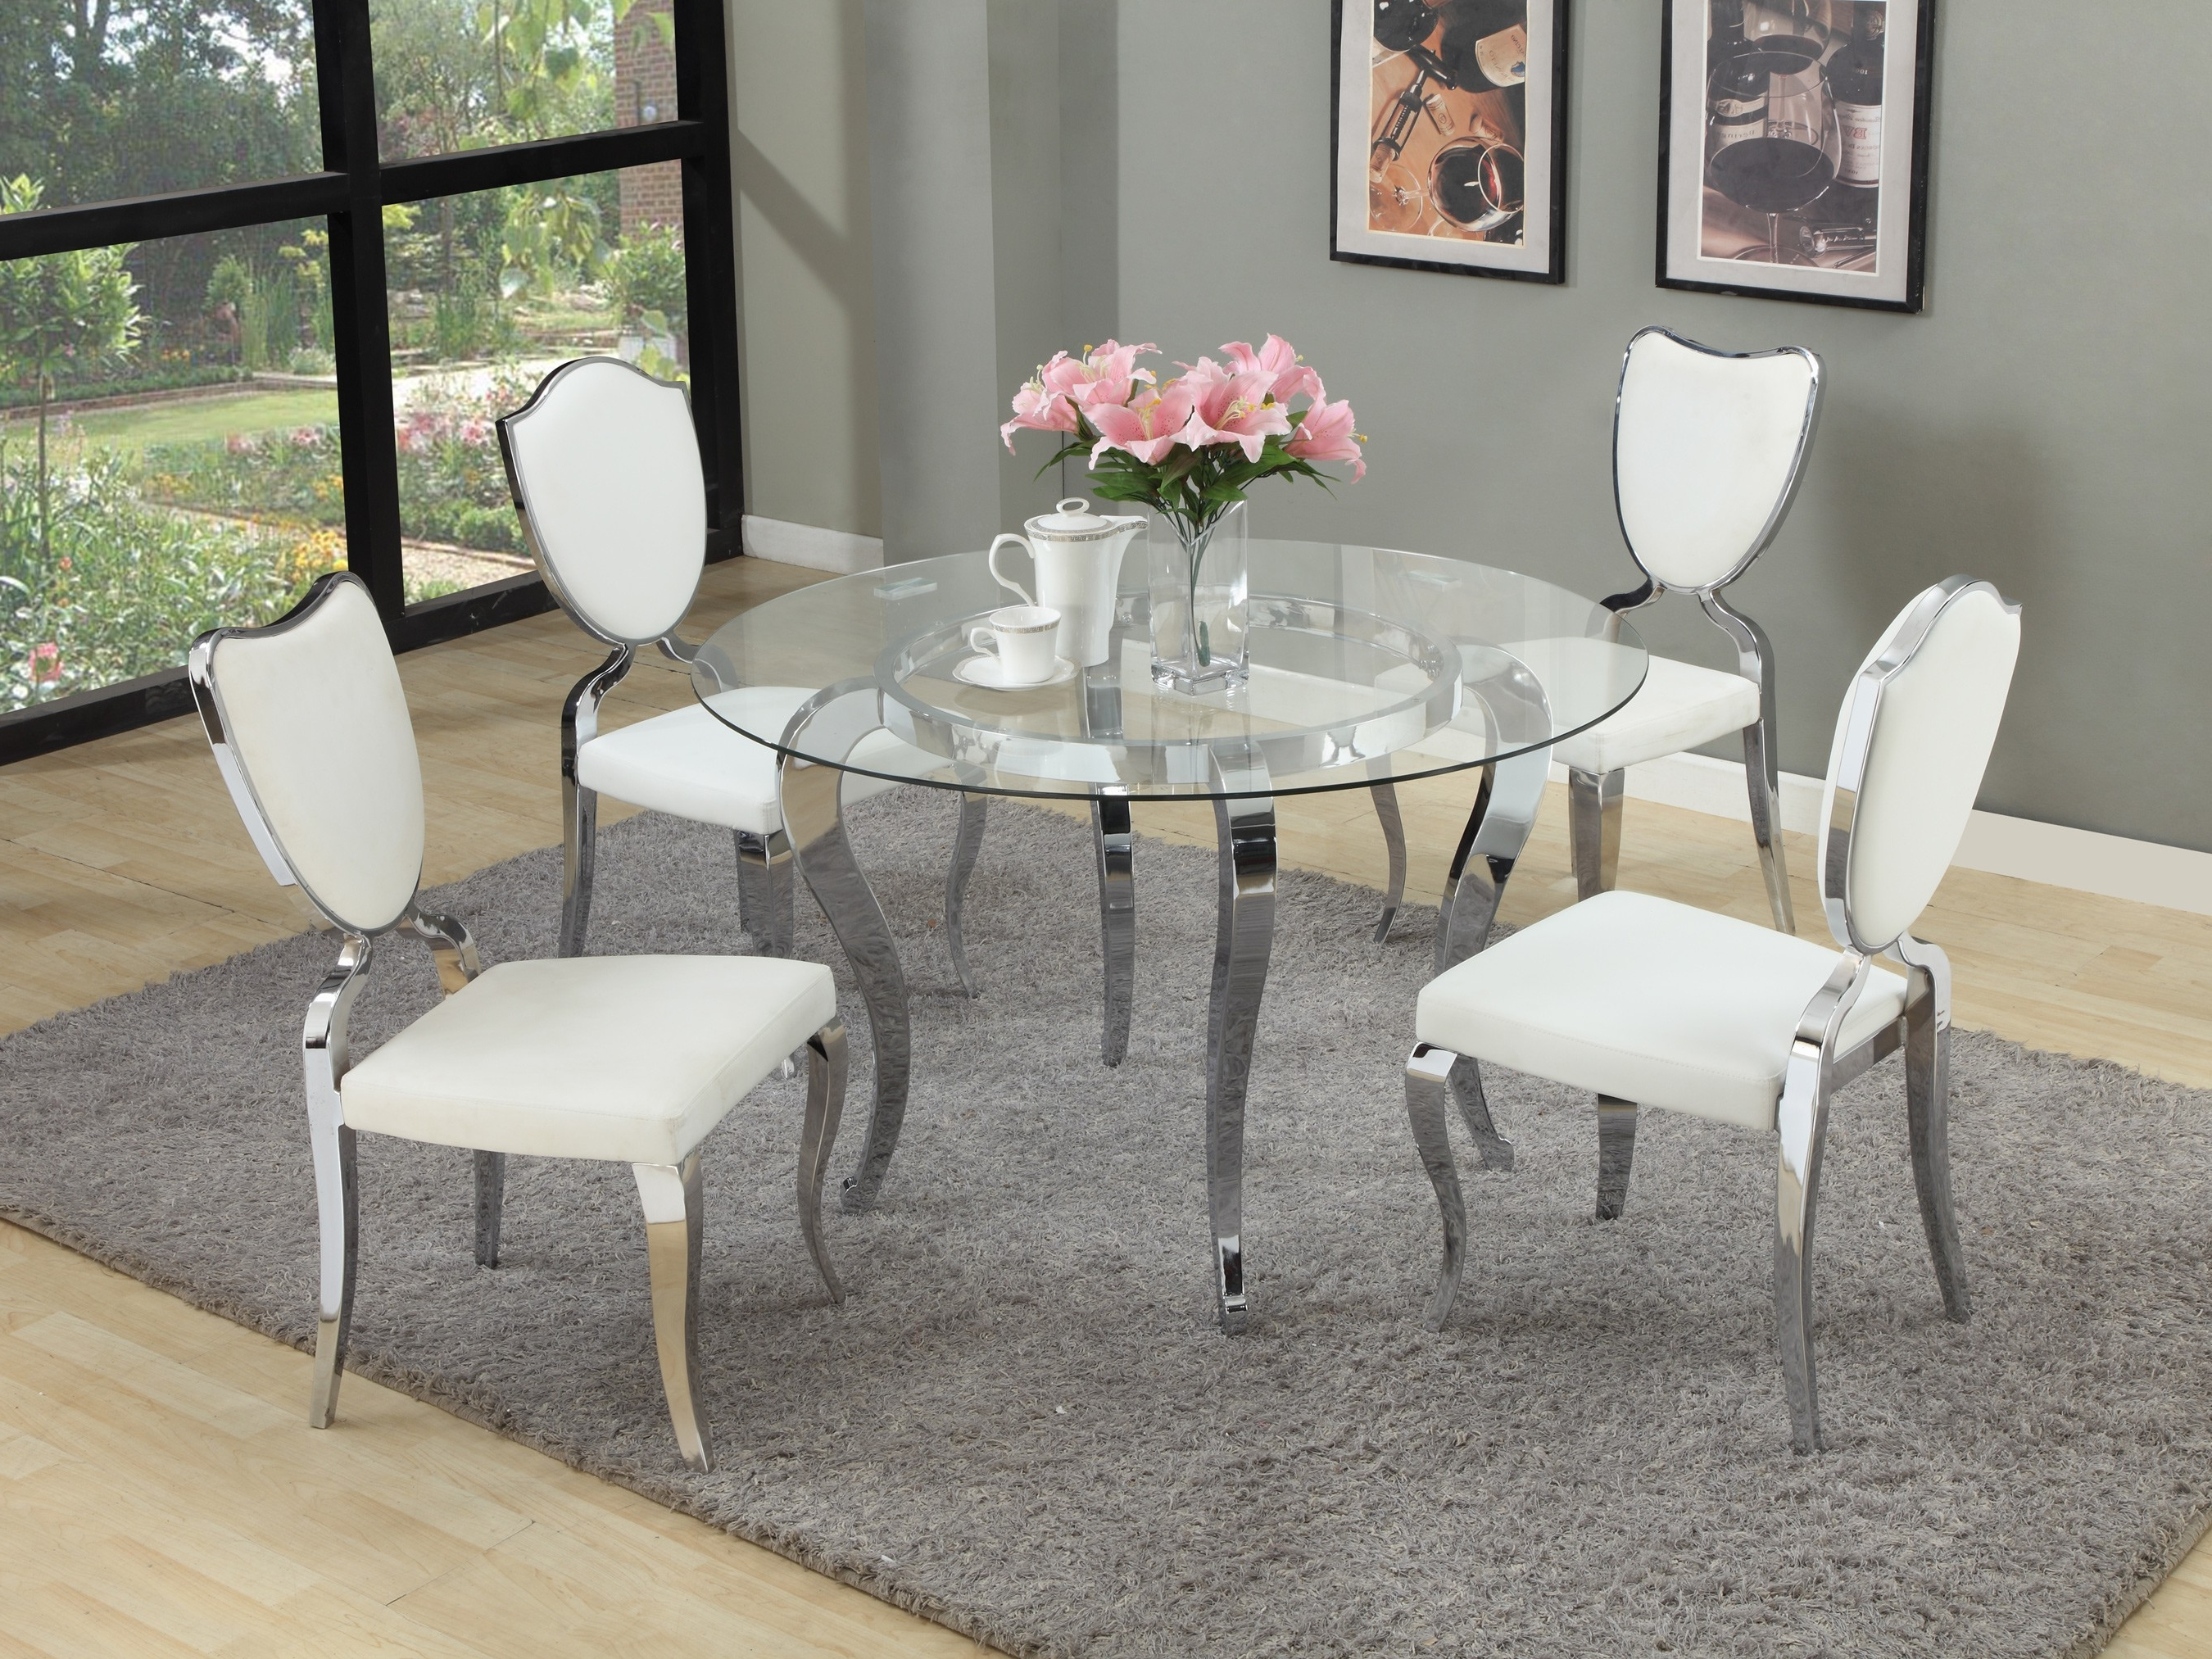 Glass Dining Tables Sets Inside Most Recently Released Round Dining Room Table Sets For 6 Refrence The Super Free Circle (View 14 of 25)